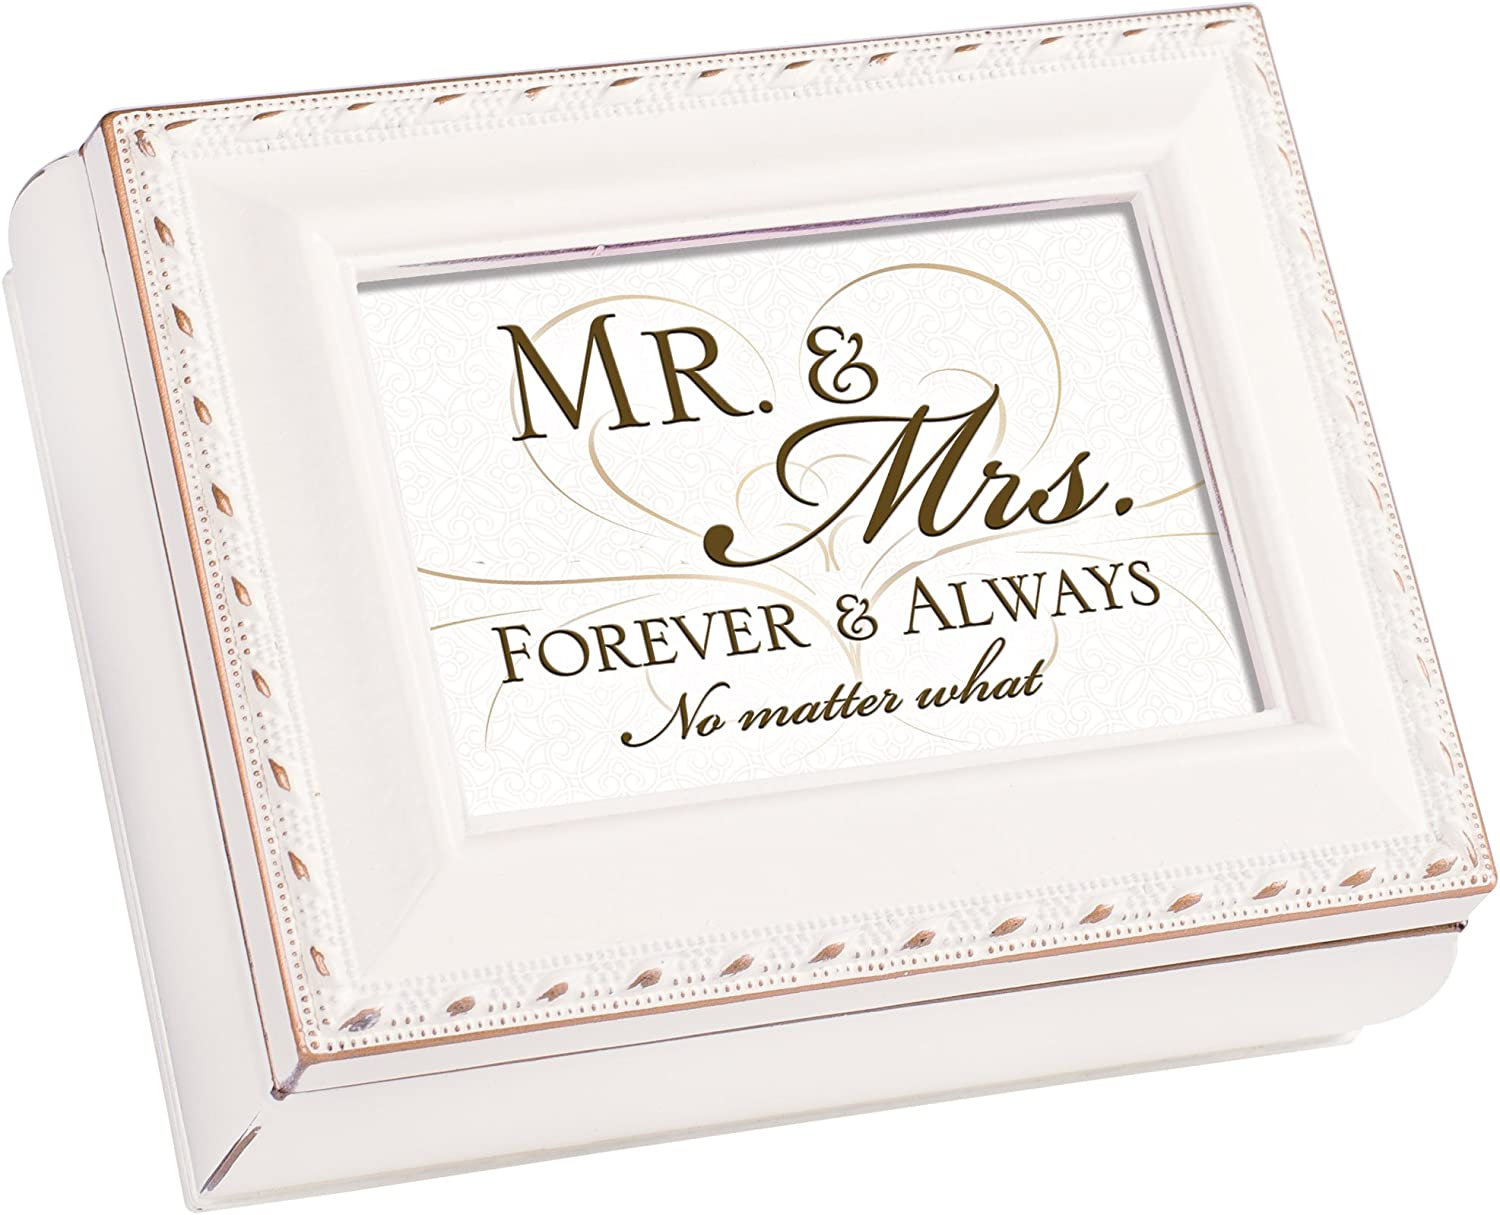 Cottage Garden Mr and Mrs Forever Ivory Rope Trim 4.5 x 3.5 Tiny Square Jewelry Keepsake Box